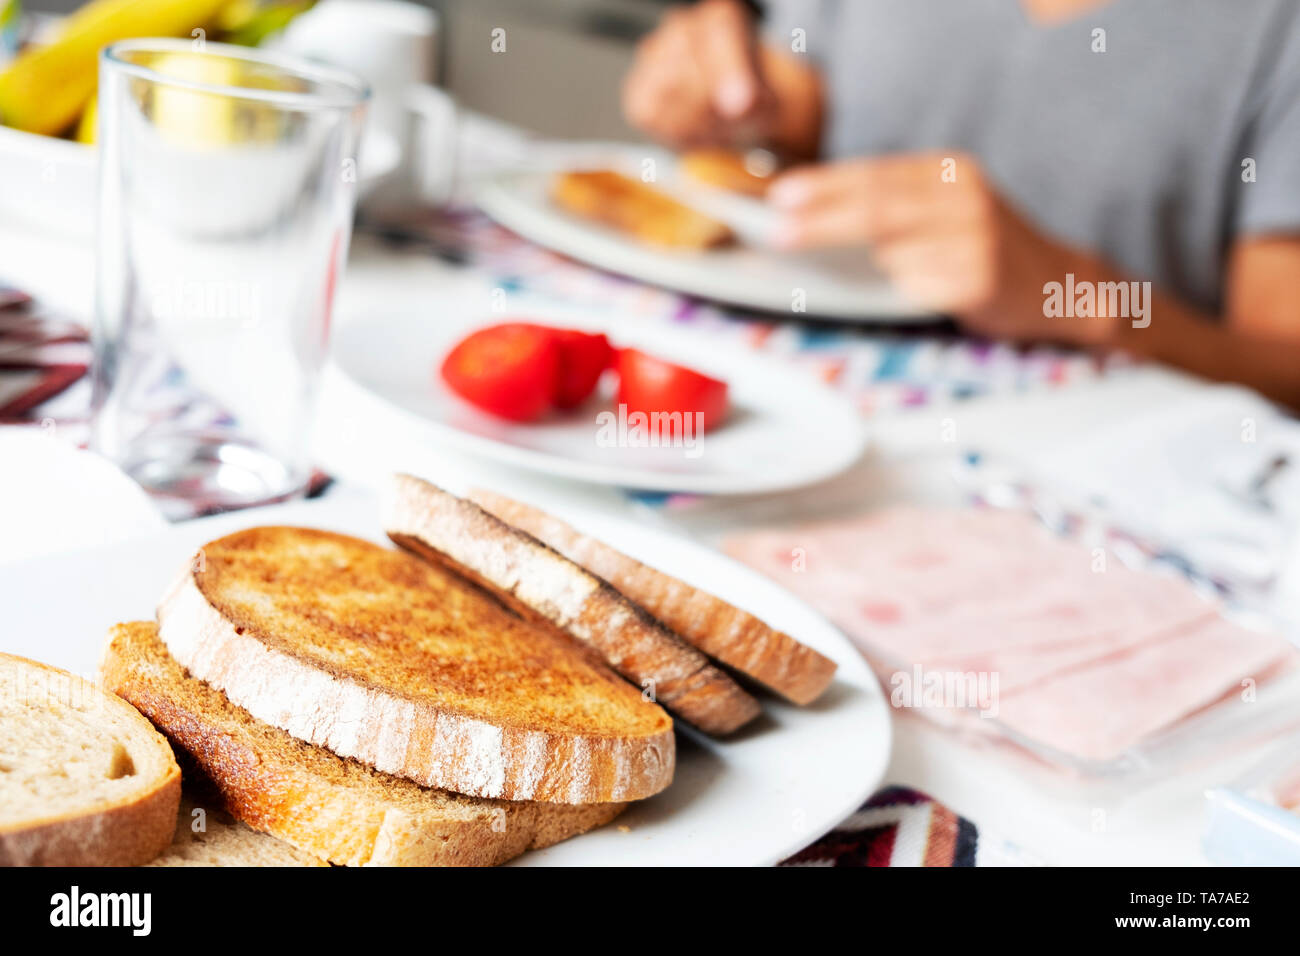 closeup of some toasts in a plate on a table set for breakfast, while a man, sitting at the table and wearing a casual gray T-shirt, spreads some jam  - Stock Image